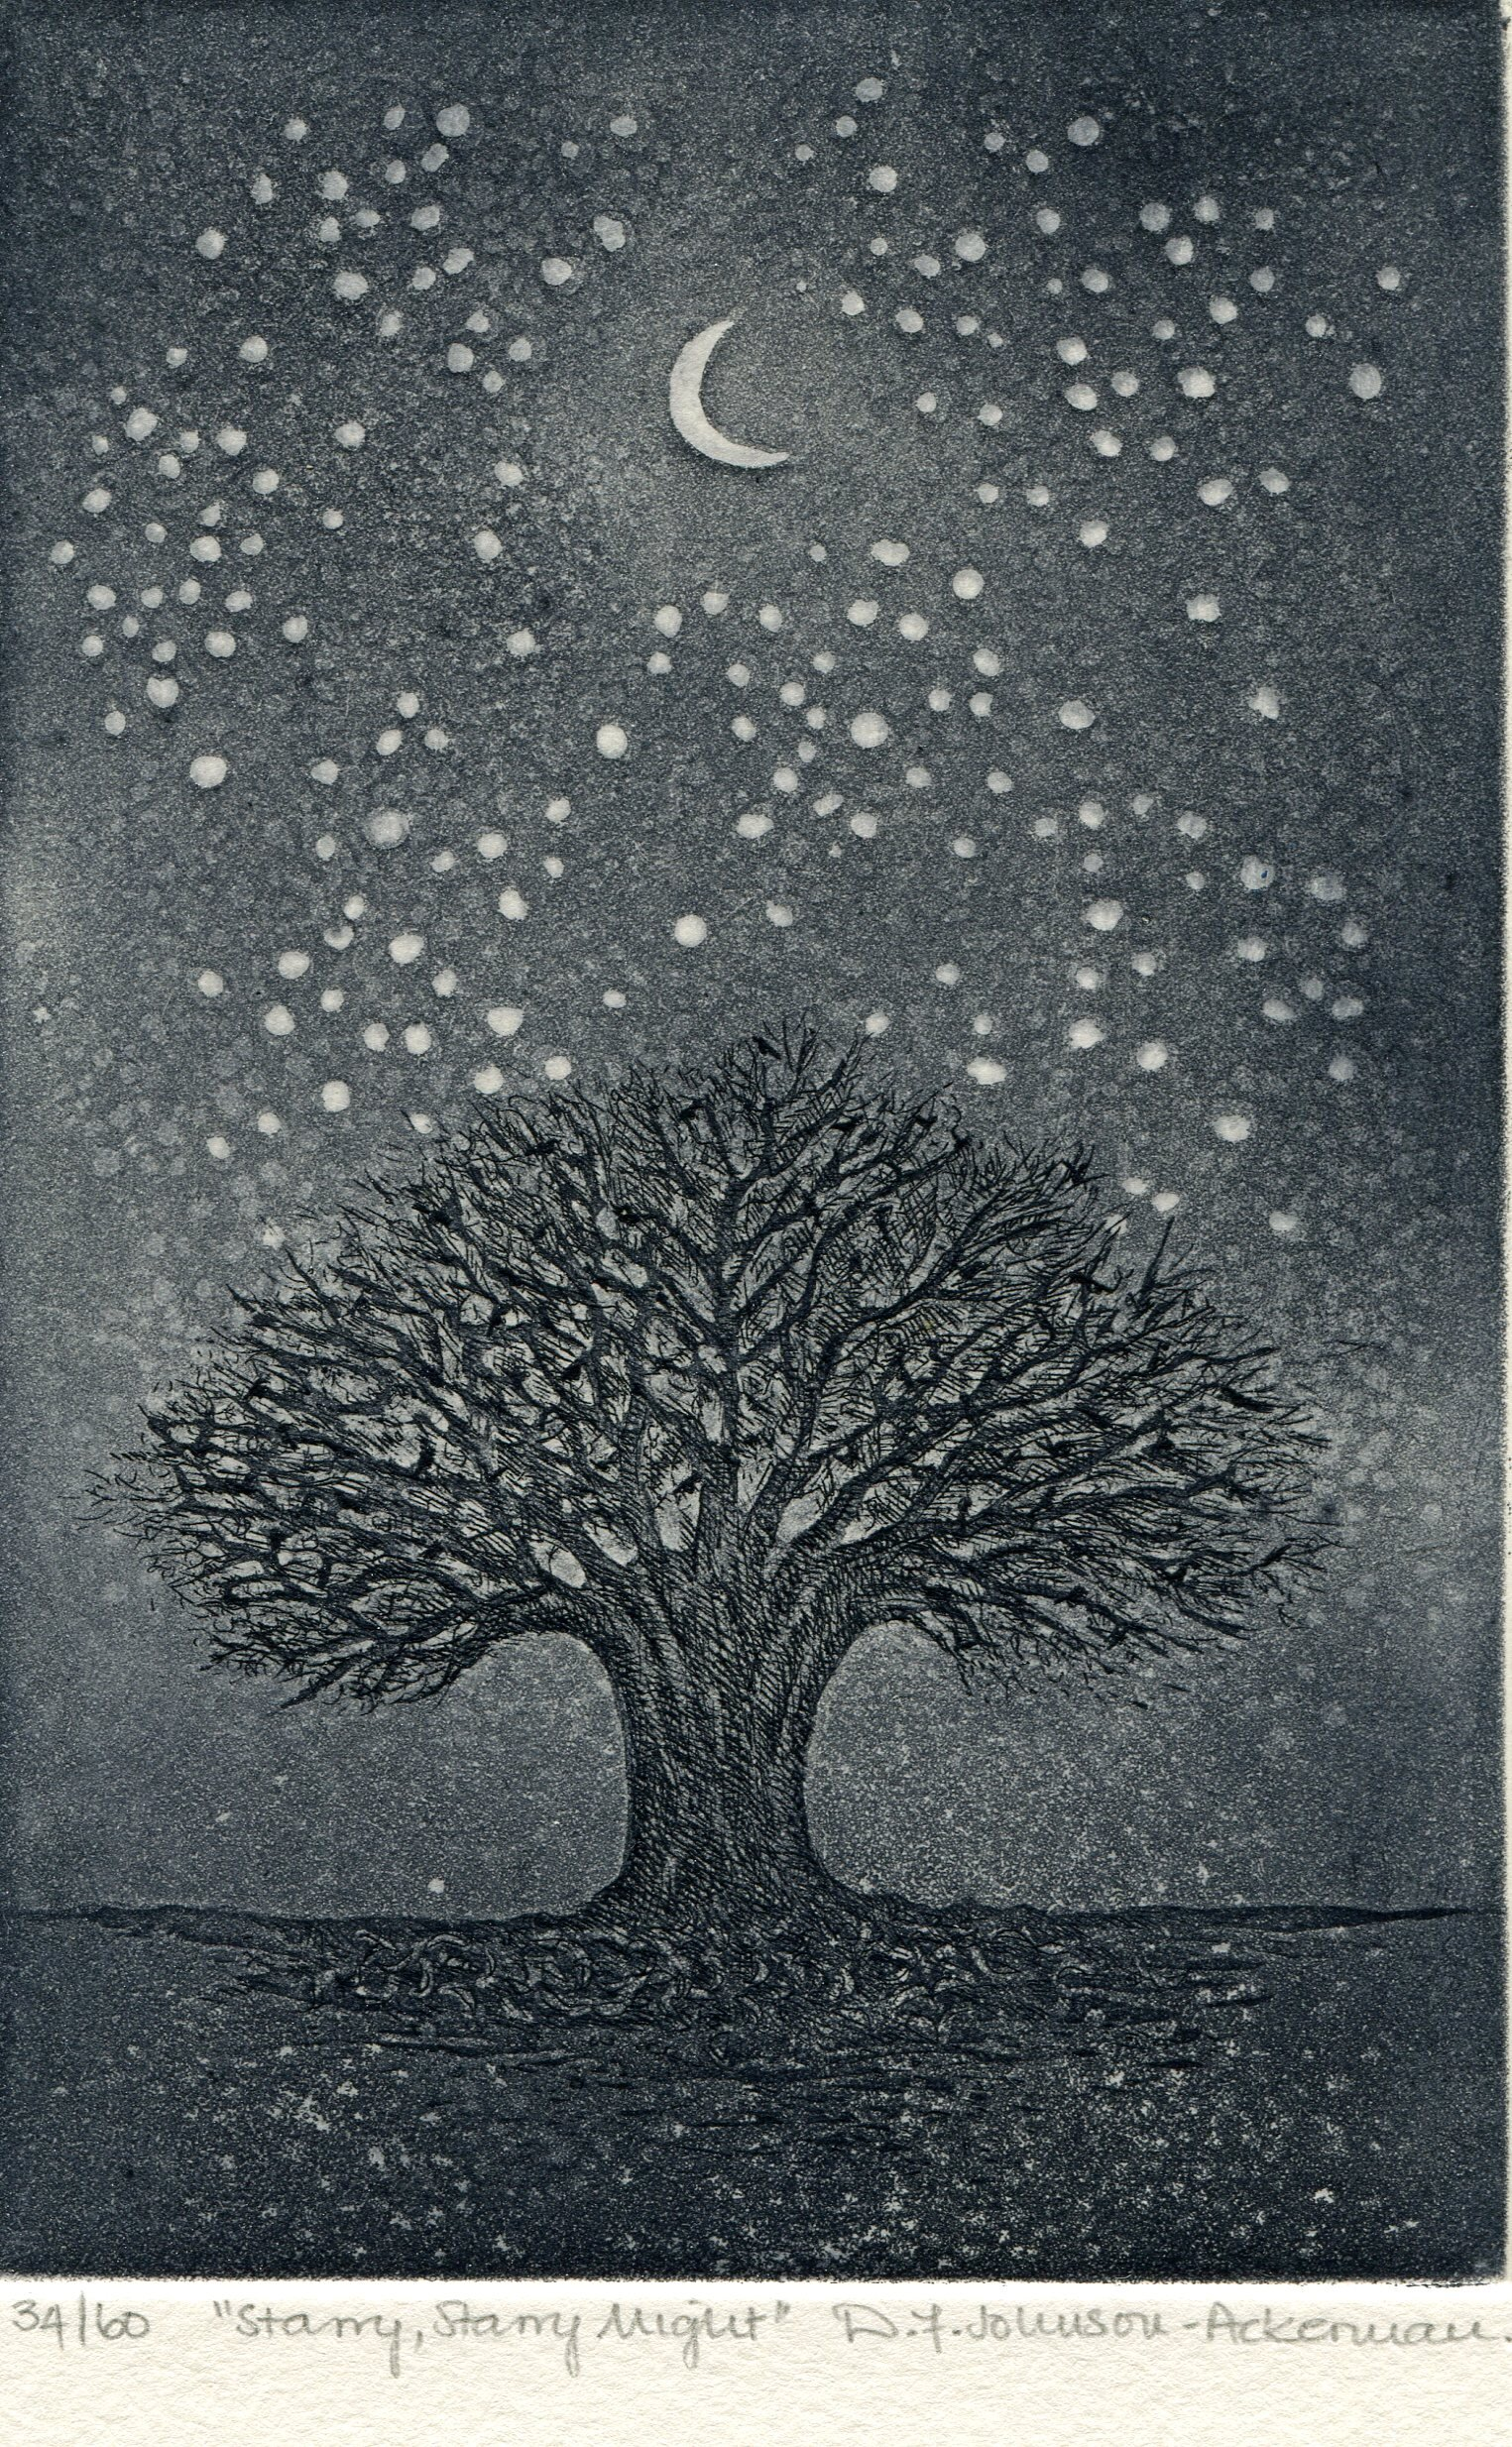 28a  Diane Johnson-Ackerman  Starry starry night  etching on paper